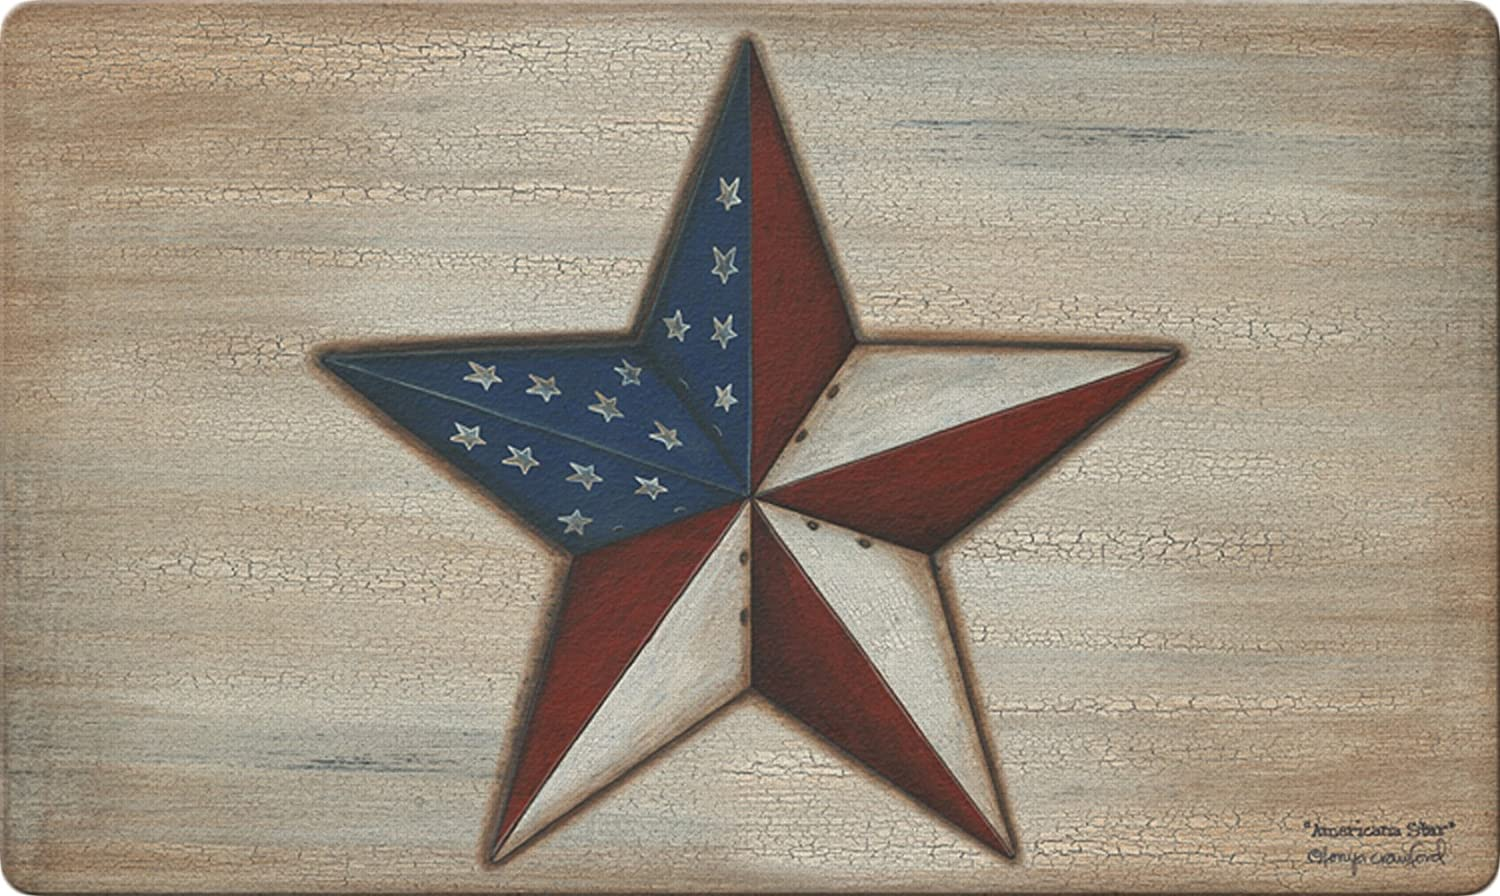 Toland Home Garden American Star 18 x 30 Inch Decorative Floor Mat Rustic Patriotic USA Stars Stripes Doormat